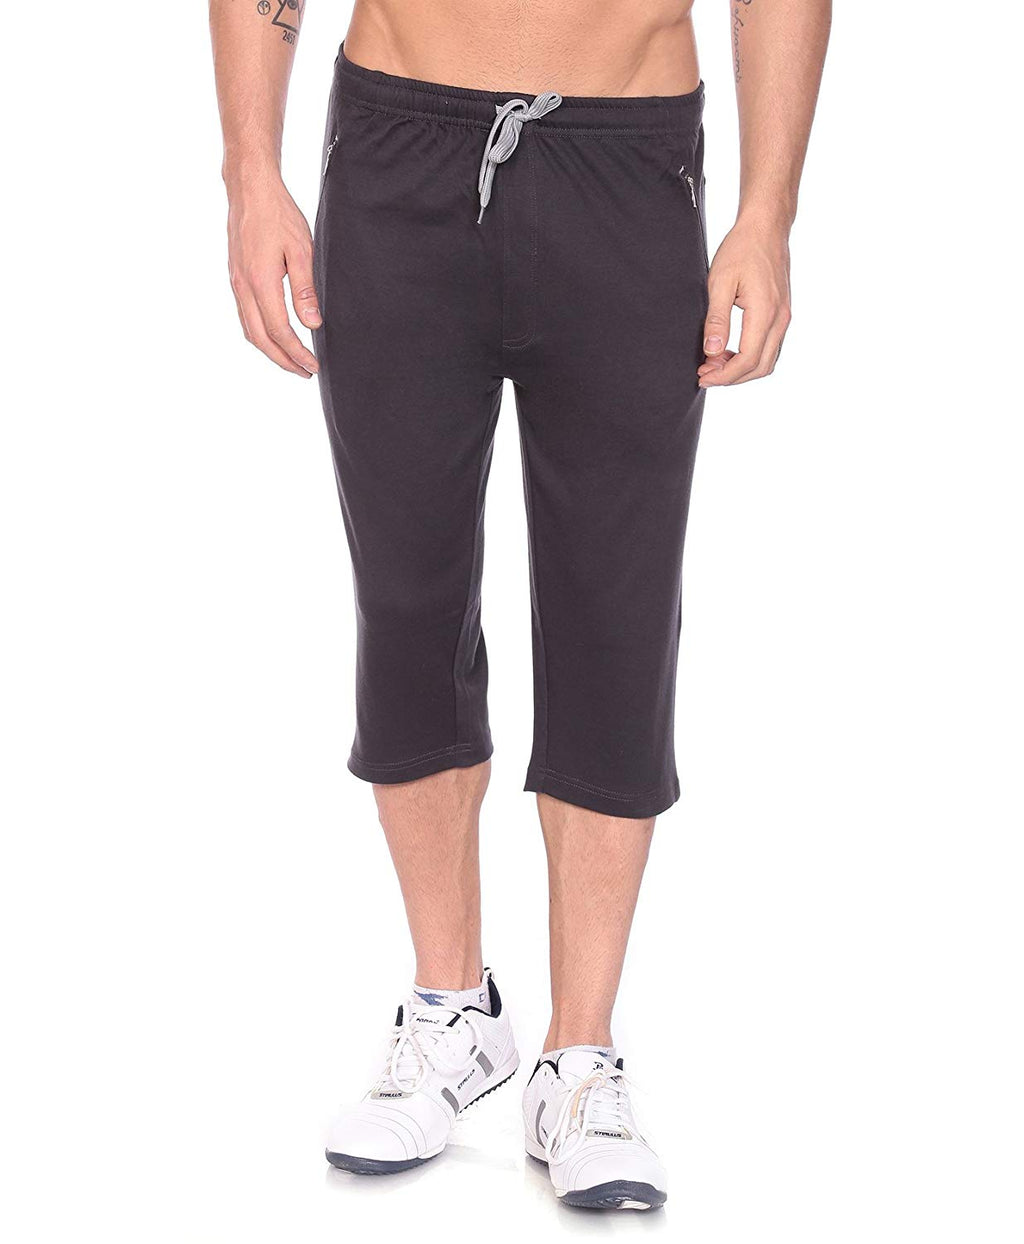 Rocker Series Capri For Men- Charcoal